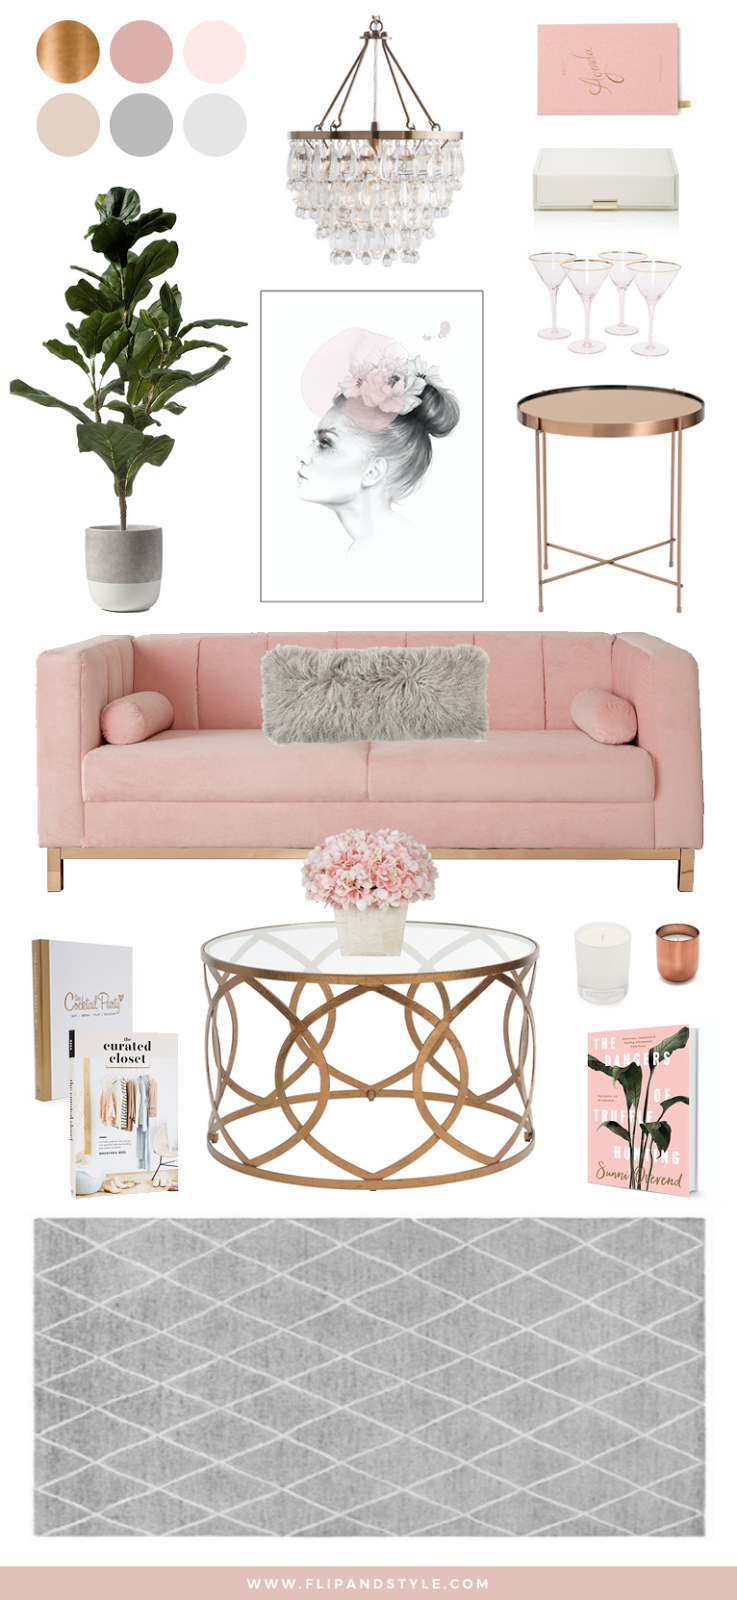 Blush Copper Grey Home Decor Interior inspiration Living